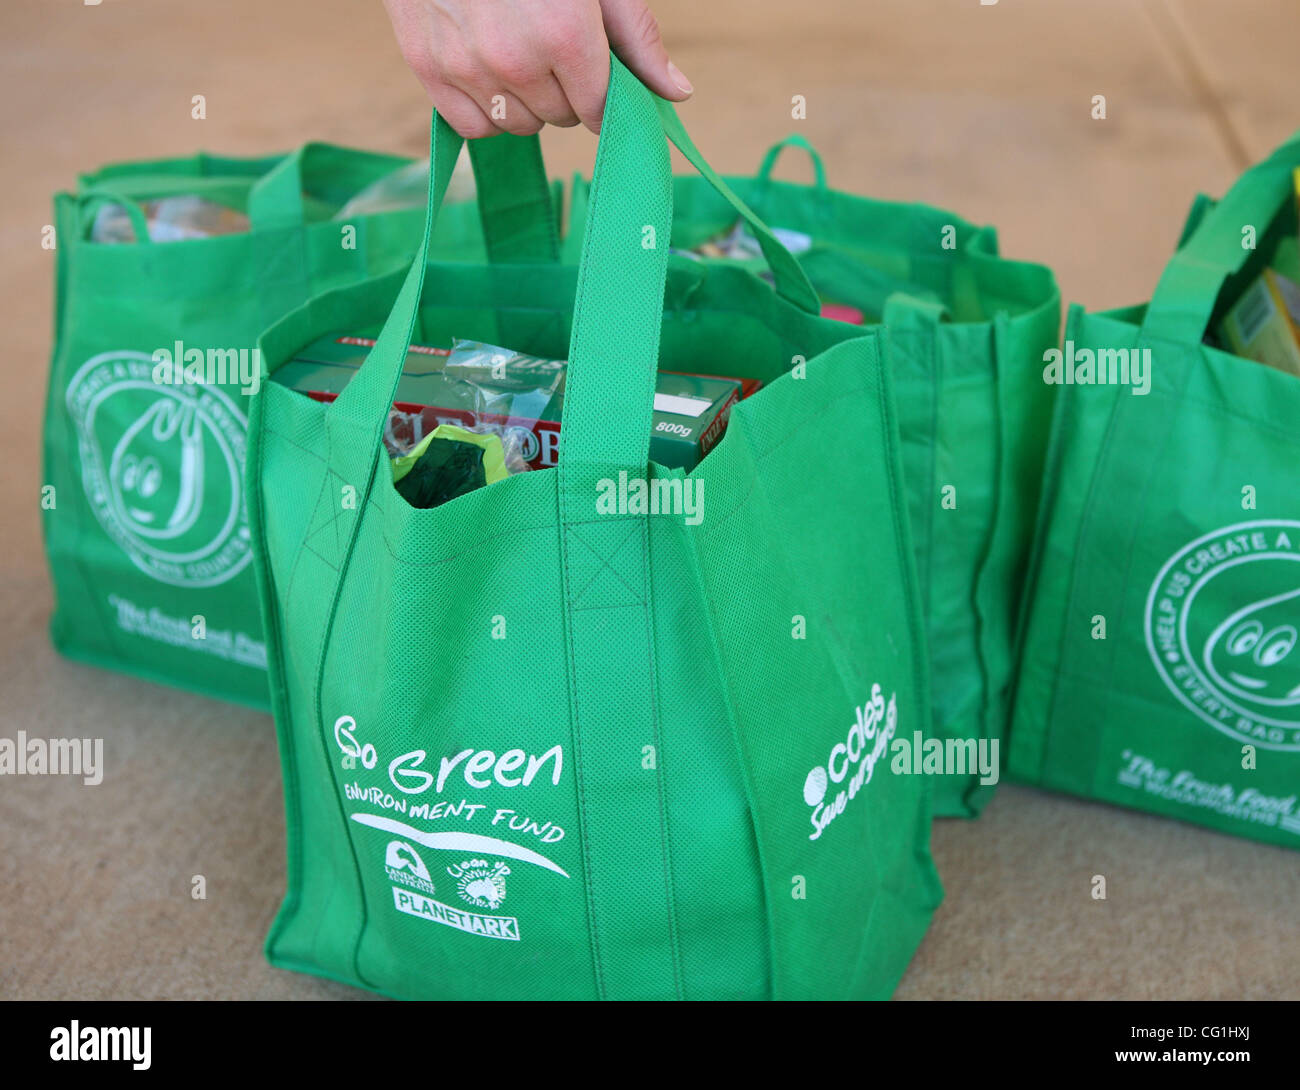 to reuse bags or to refuse I would just avoid reusing bags that have had raw meat in them you can sometimes recycle plastic bags that aren't too dirty be sure to check with your local thrift stores, food banks, libraries, schools, day care centers etc to see if they ever need extra plastic bags or grocery sacks.